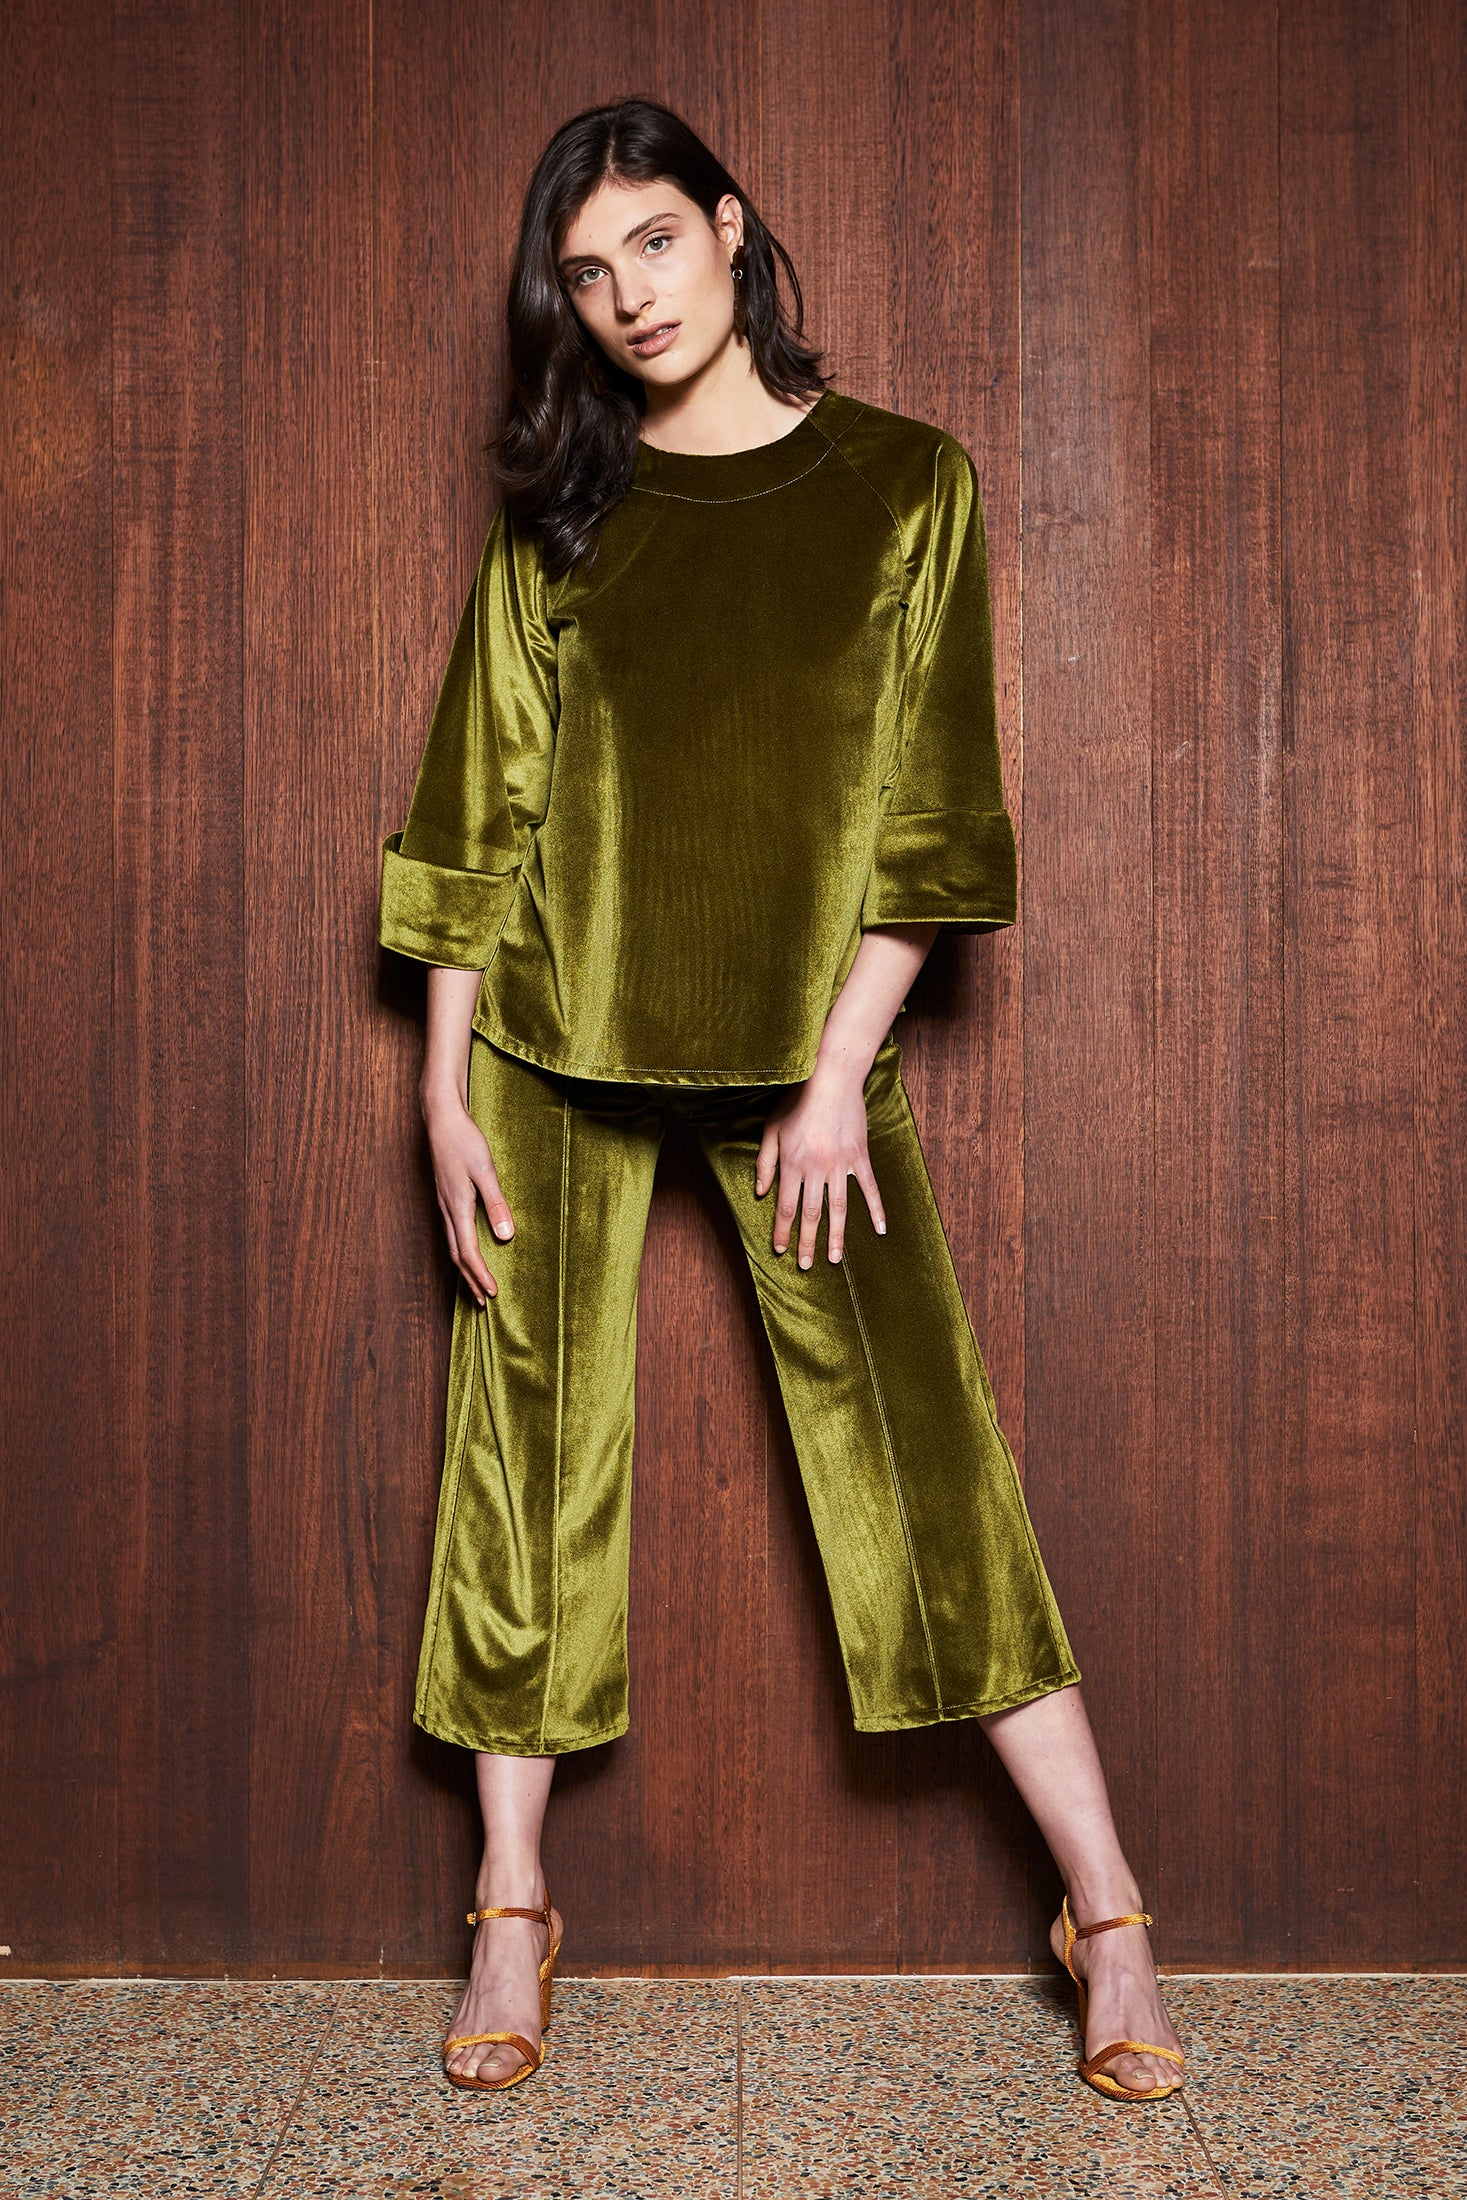 keegan Australian made Women's Clothing in Melbourne Australia Moss Top Green Velvet